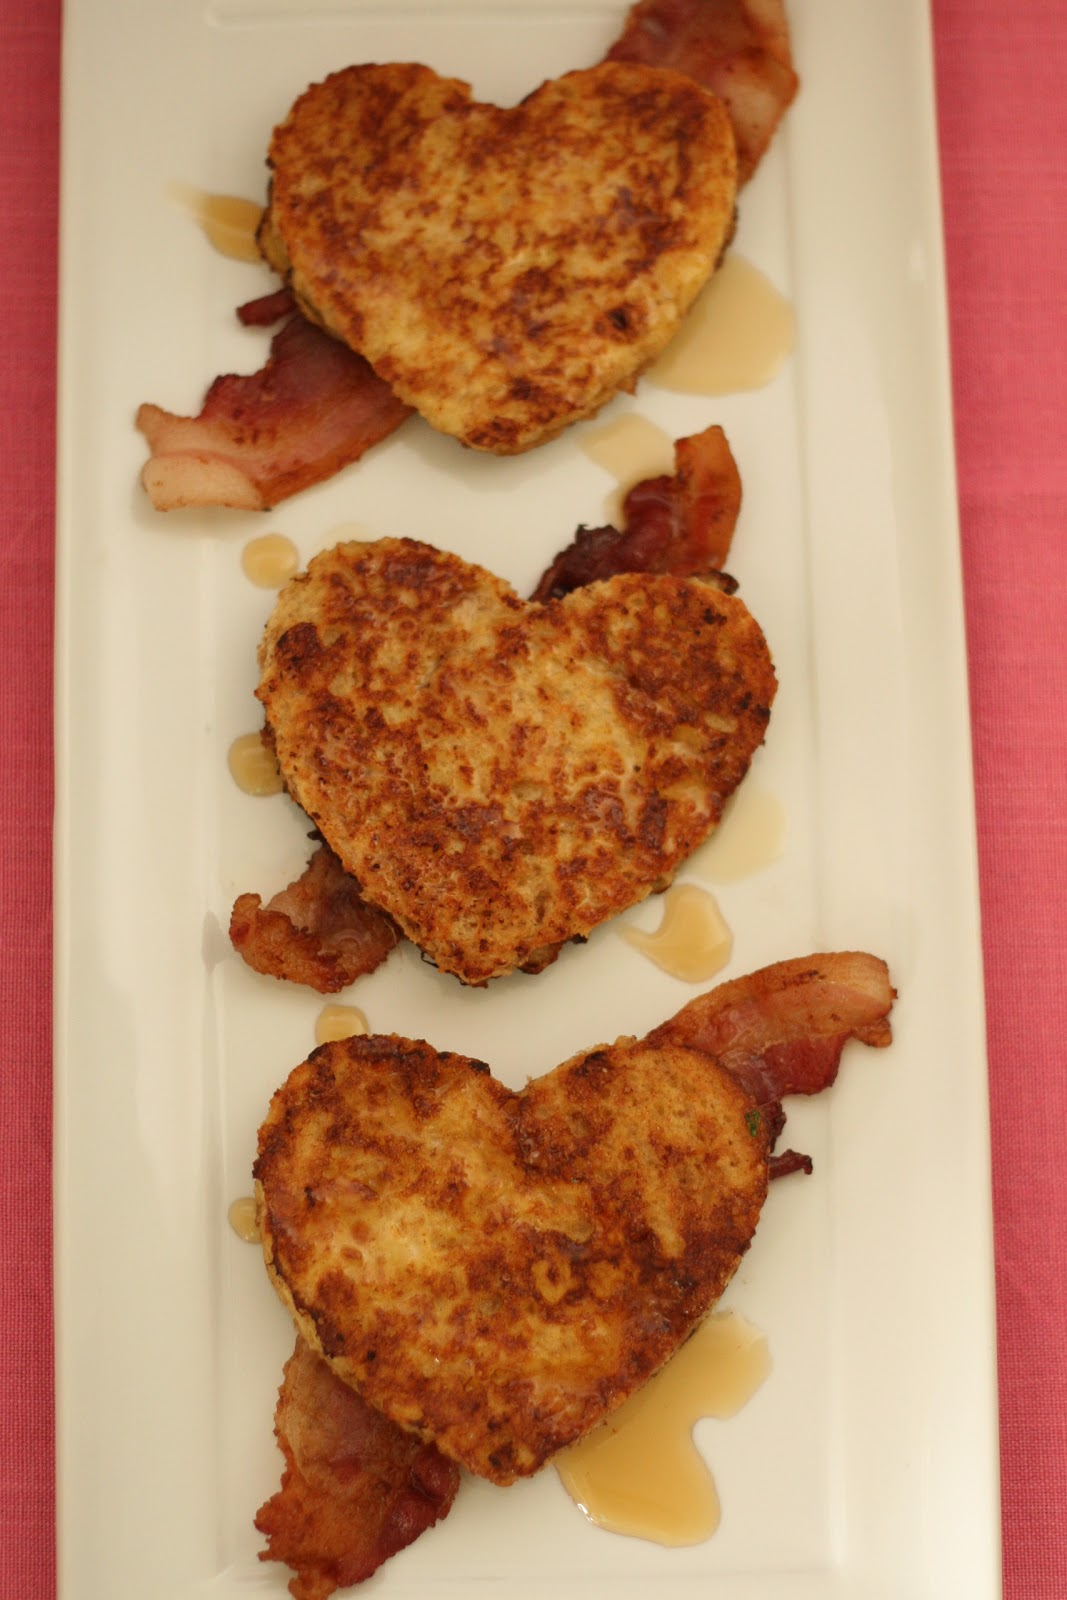 Romantic Foods For The Bedroom: Gourmet Goodies: ROMANTIC FOOD IDEAS FOR VALENTINE'S DAY